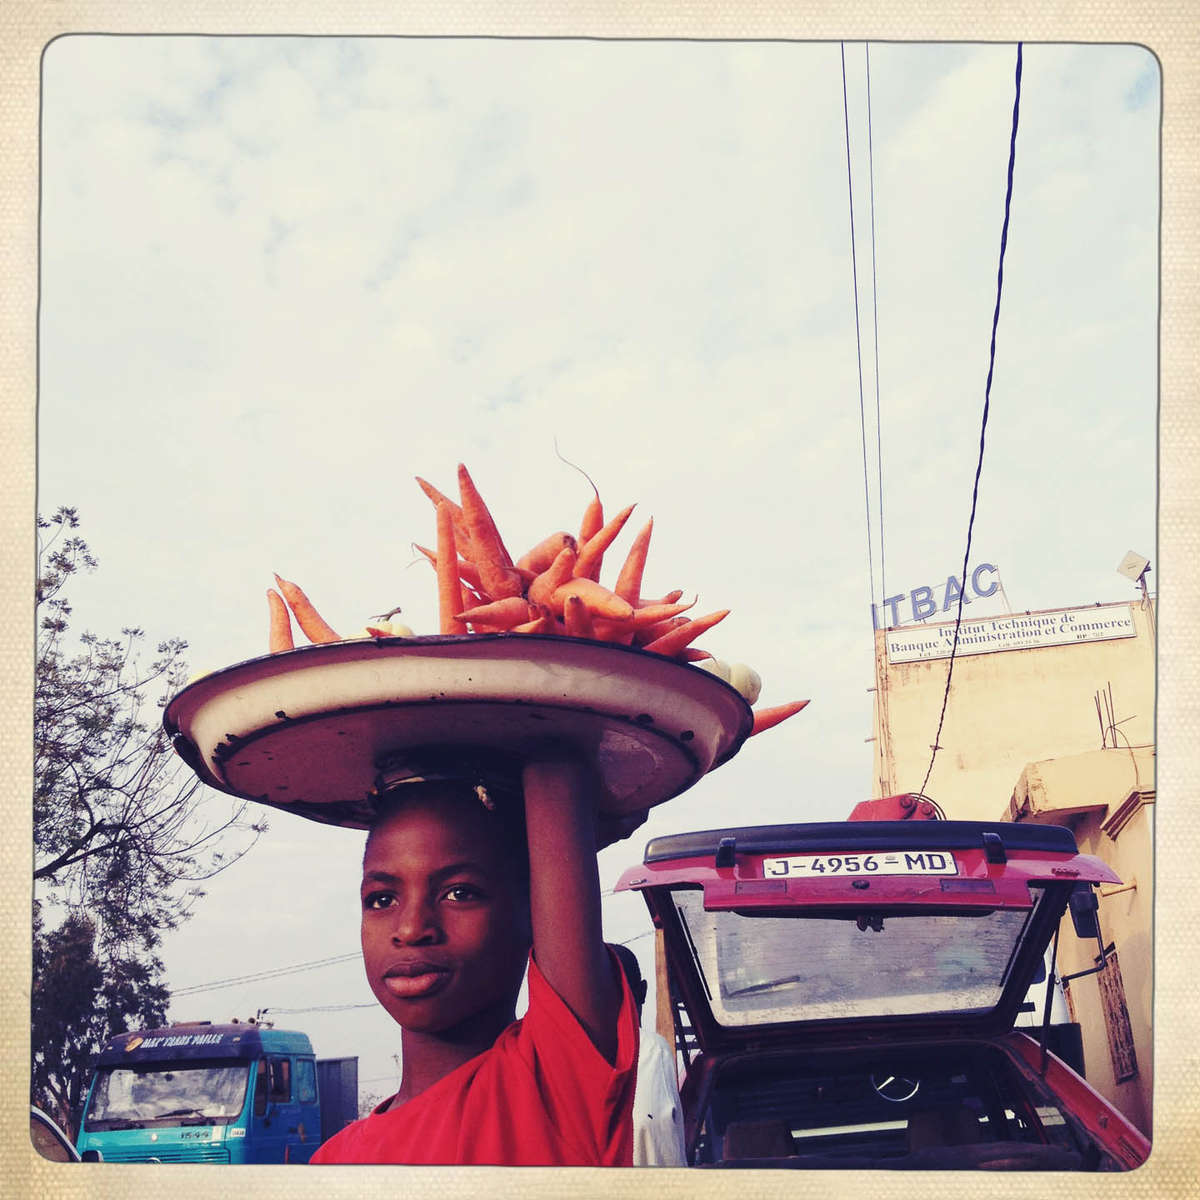 A boy sells carrots at a bus station in Bamako, Mali. January 2013.